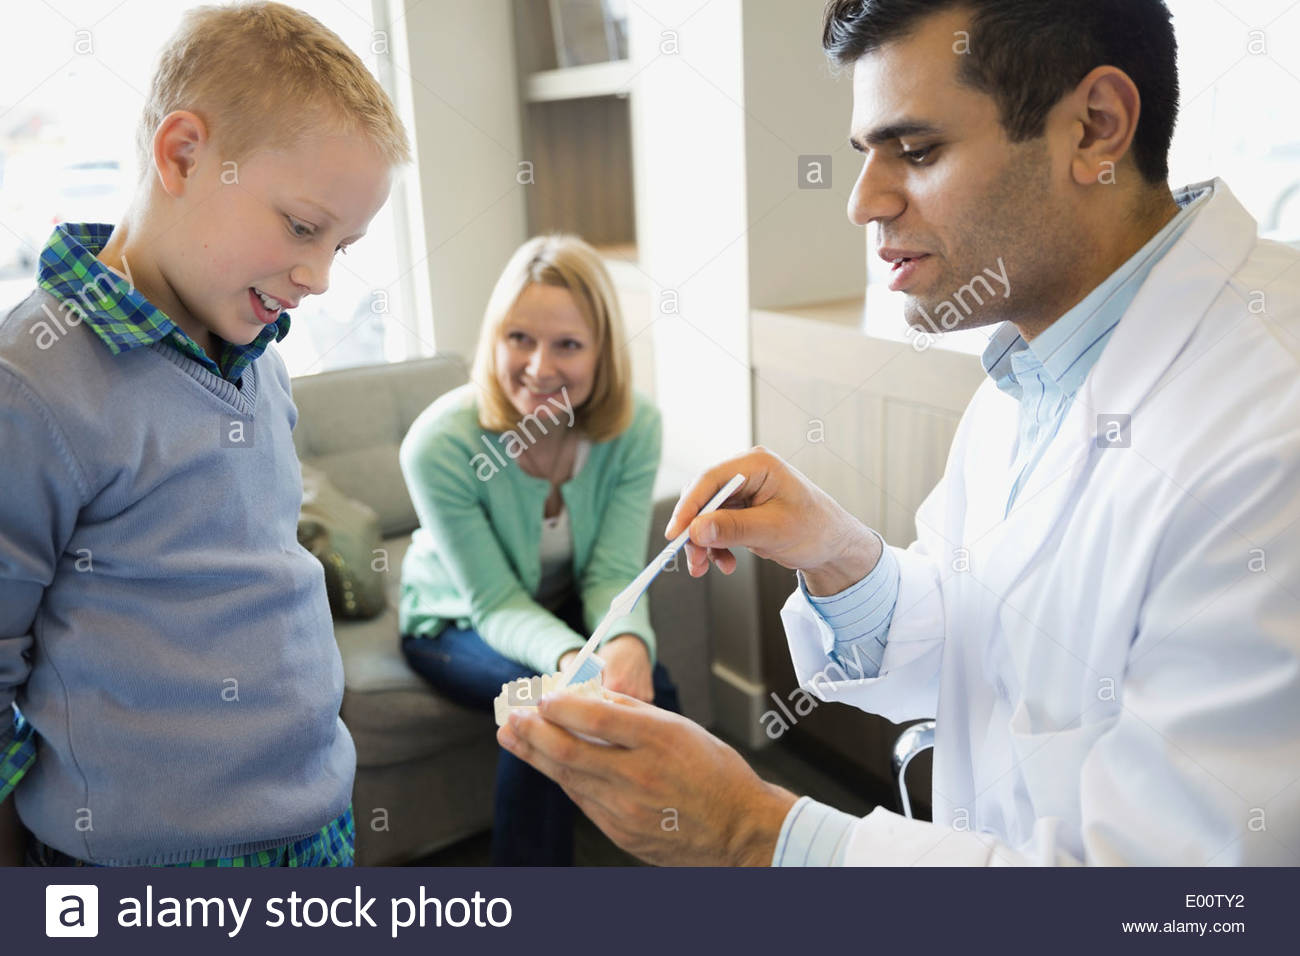 Dentist showing boy how to brush teeth - Stock Image